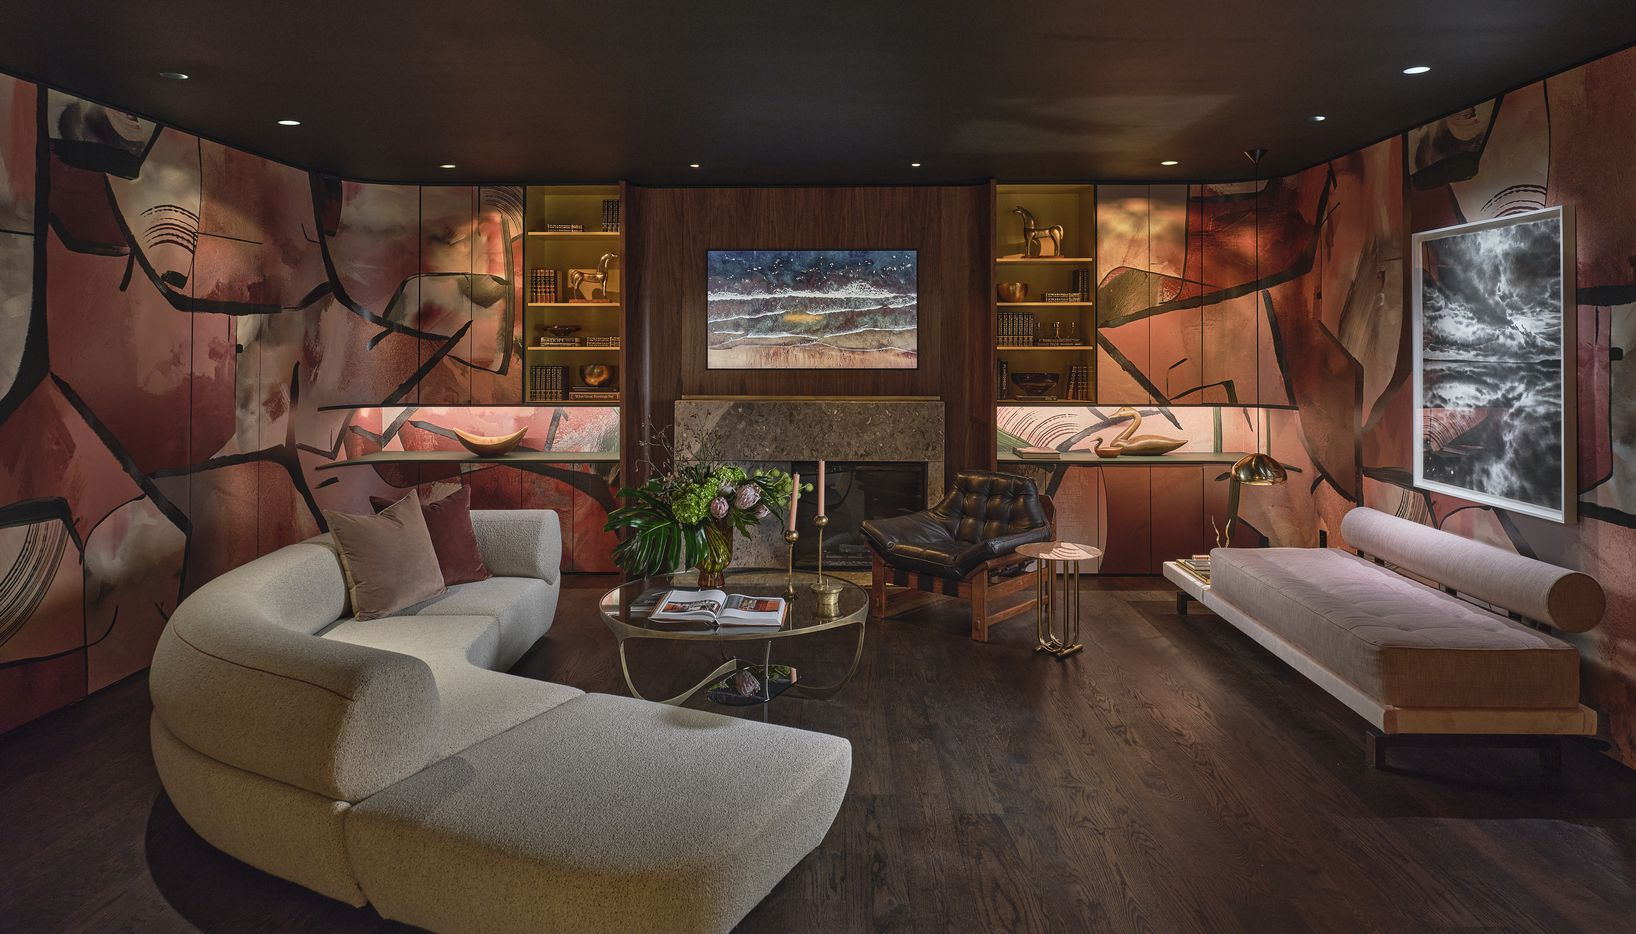 Yates Desygn crafted an entertaining area on the basement level of the 2021 Kips Bay Decorator Show House Dallas. The room has ample living space and lounging areas, a kitchen and a dedicated game table. Making the most of the lack of windows on the basement level, the design team used moody lighting and rosy hues to create a welcoming feel.